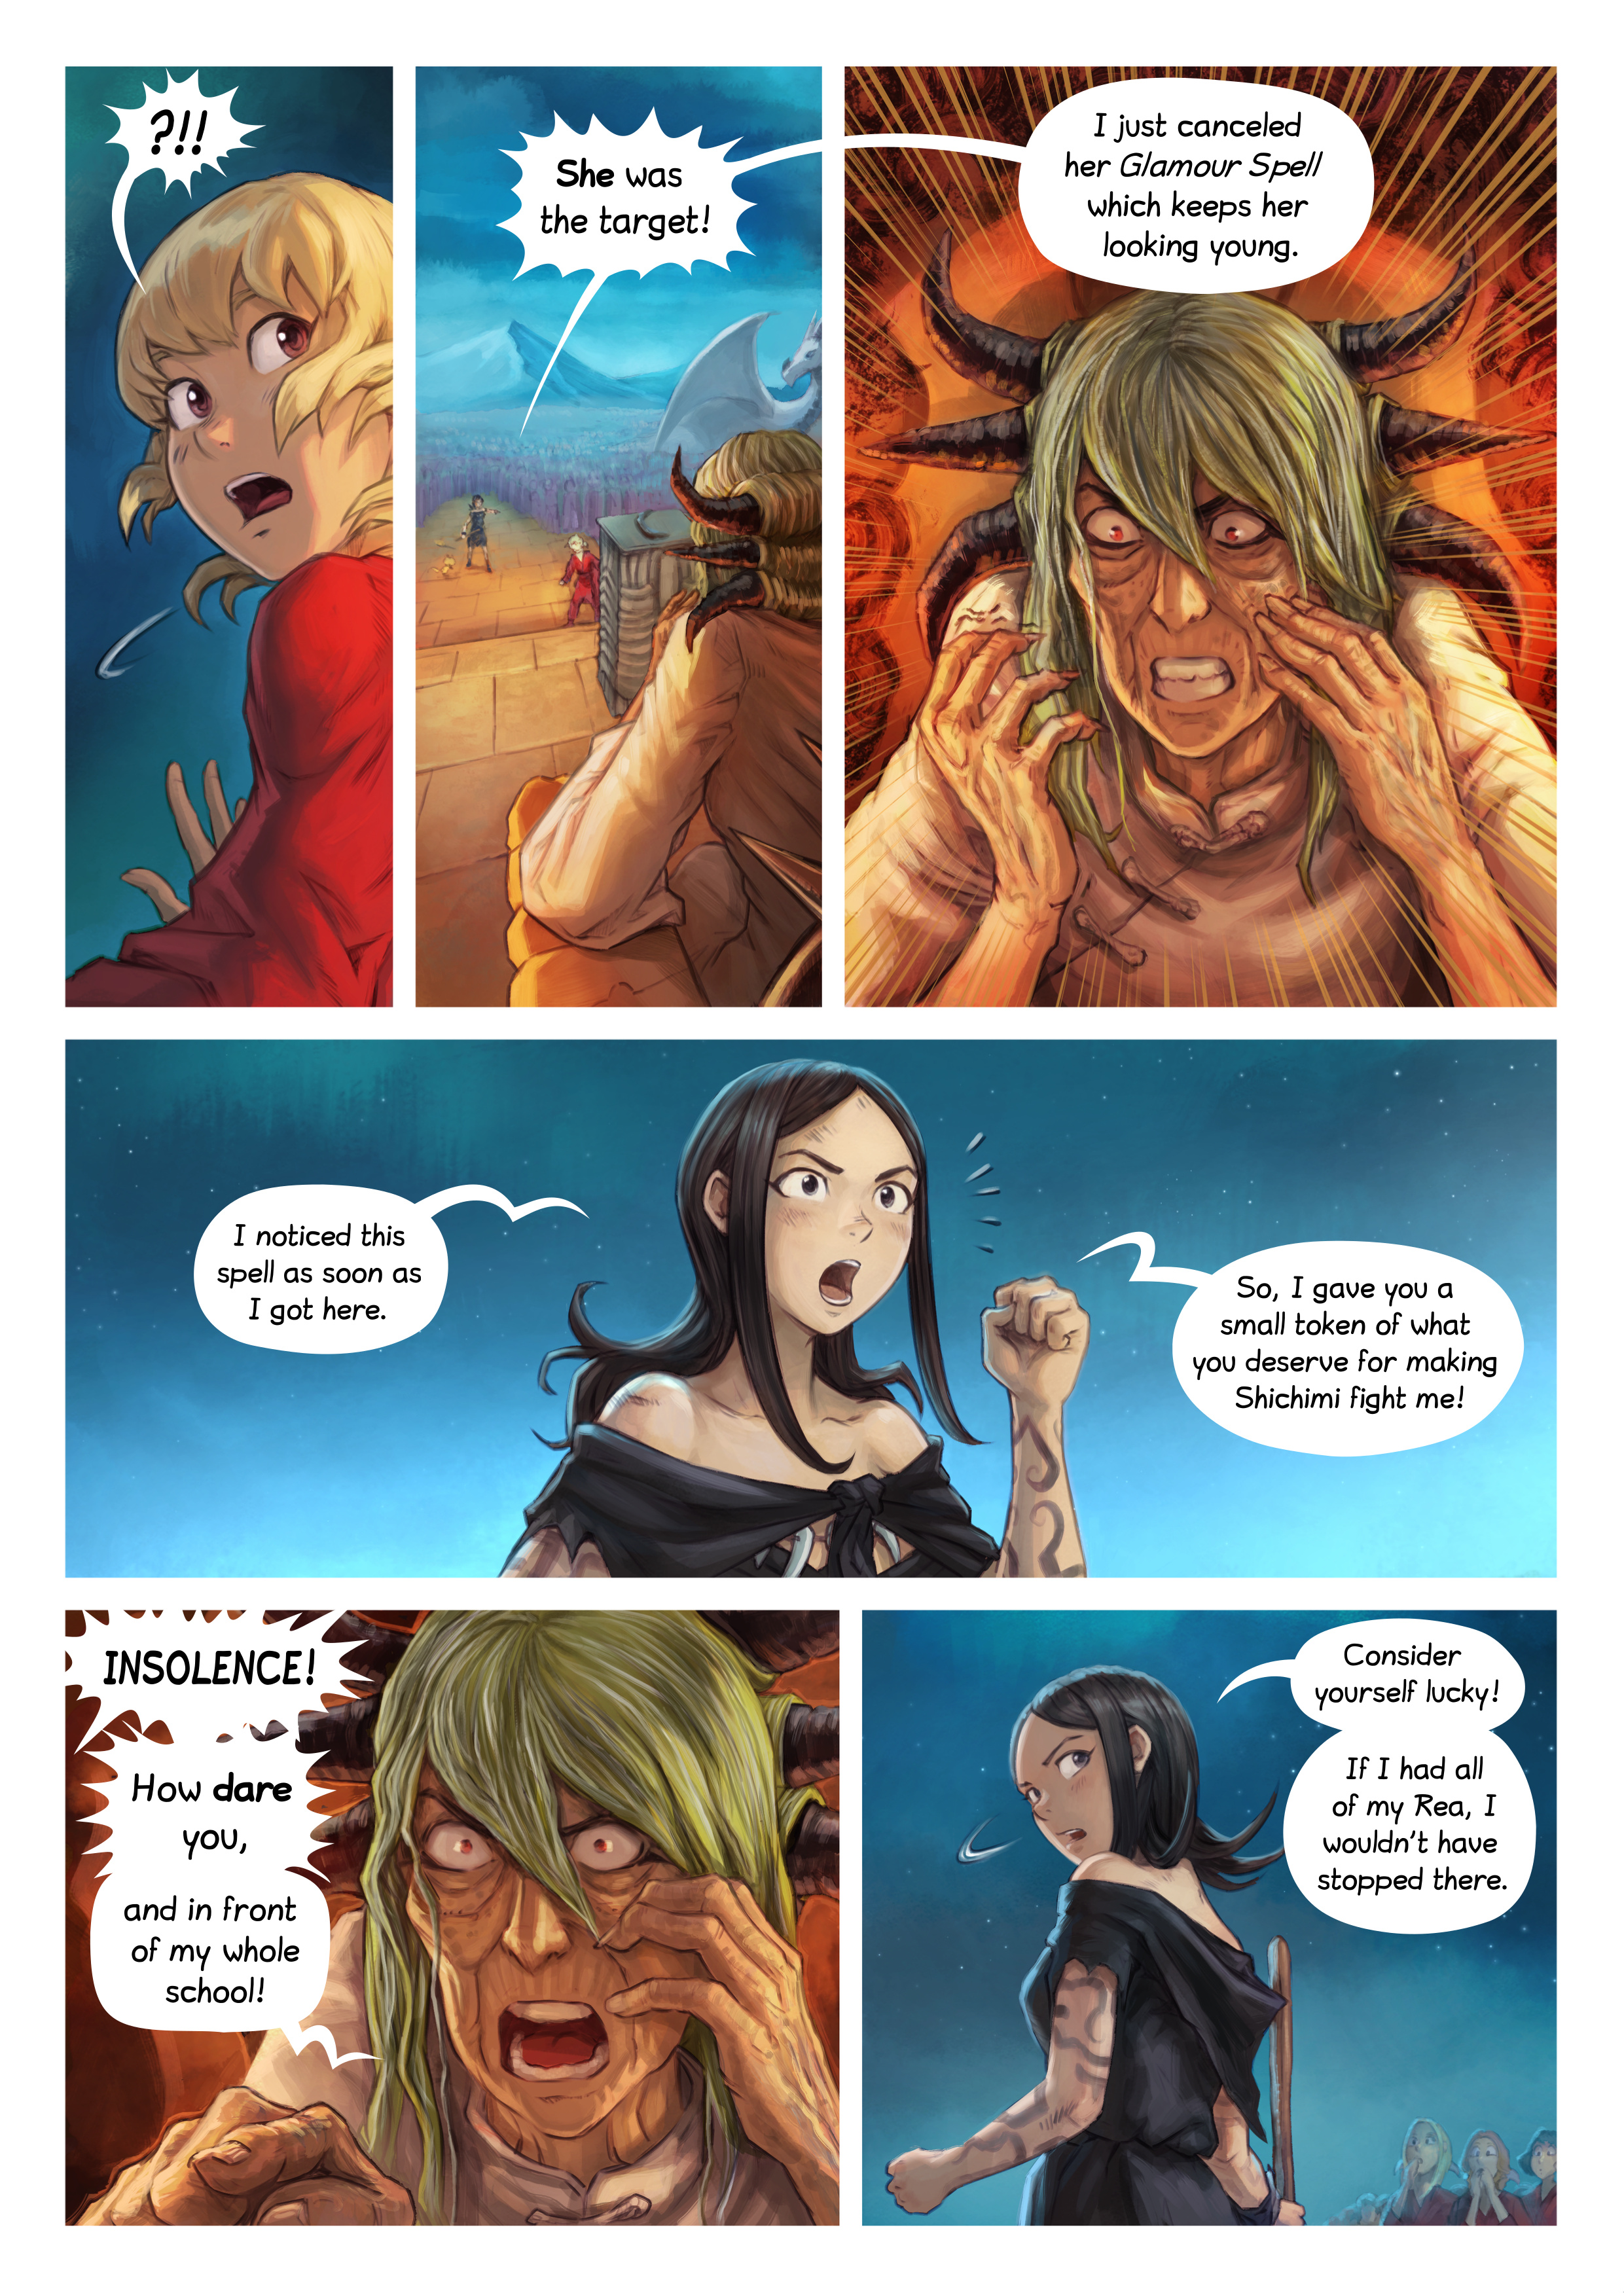 Episode 34: The Knighting of Shichimi, Page 8